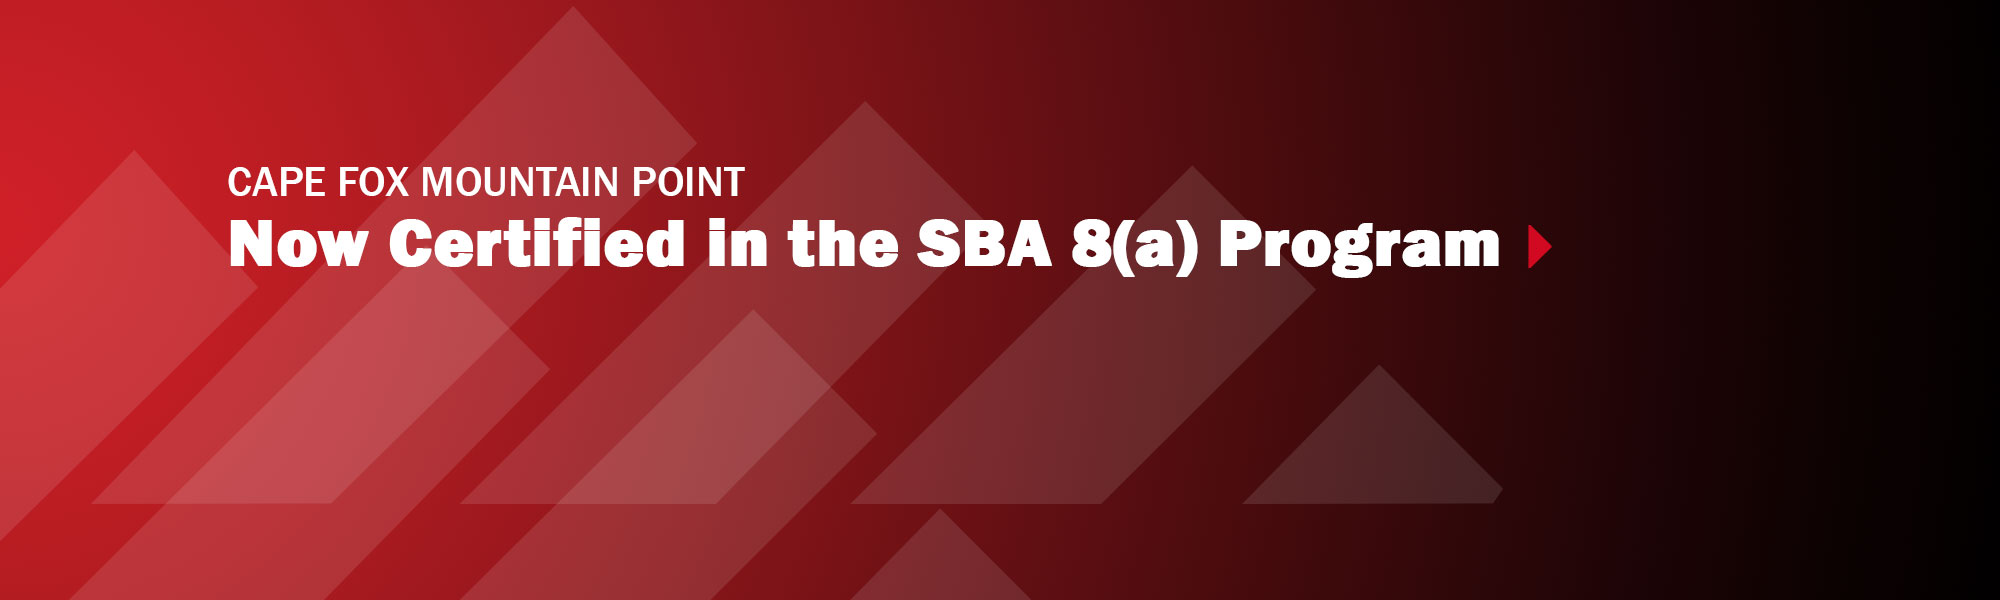 Mountain Point Now Certified in the SBA 8(a) Program